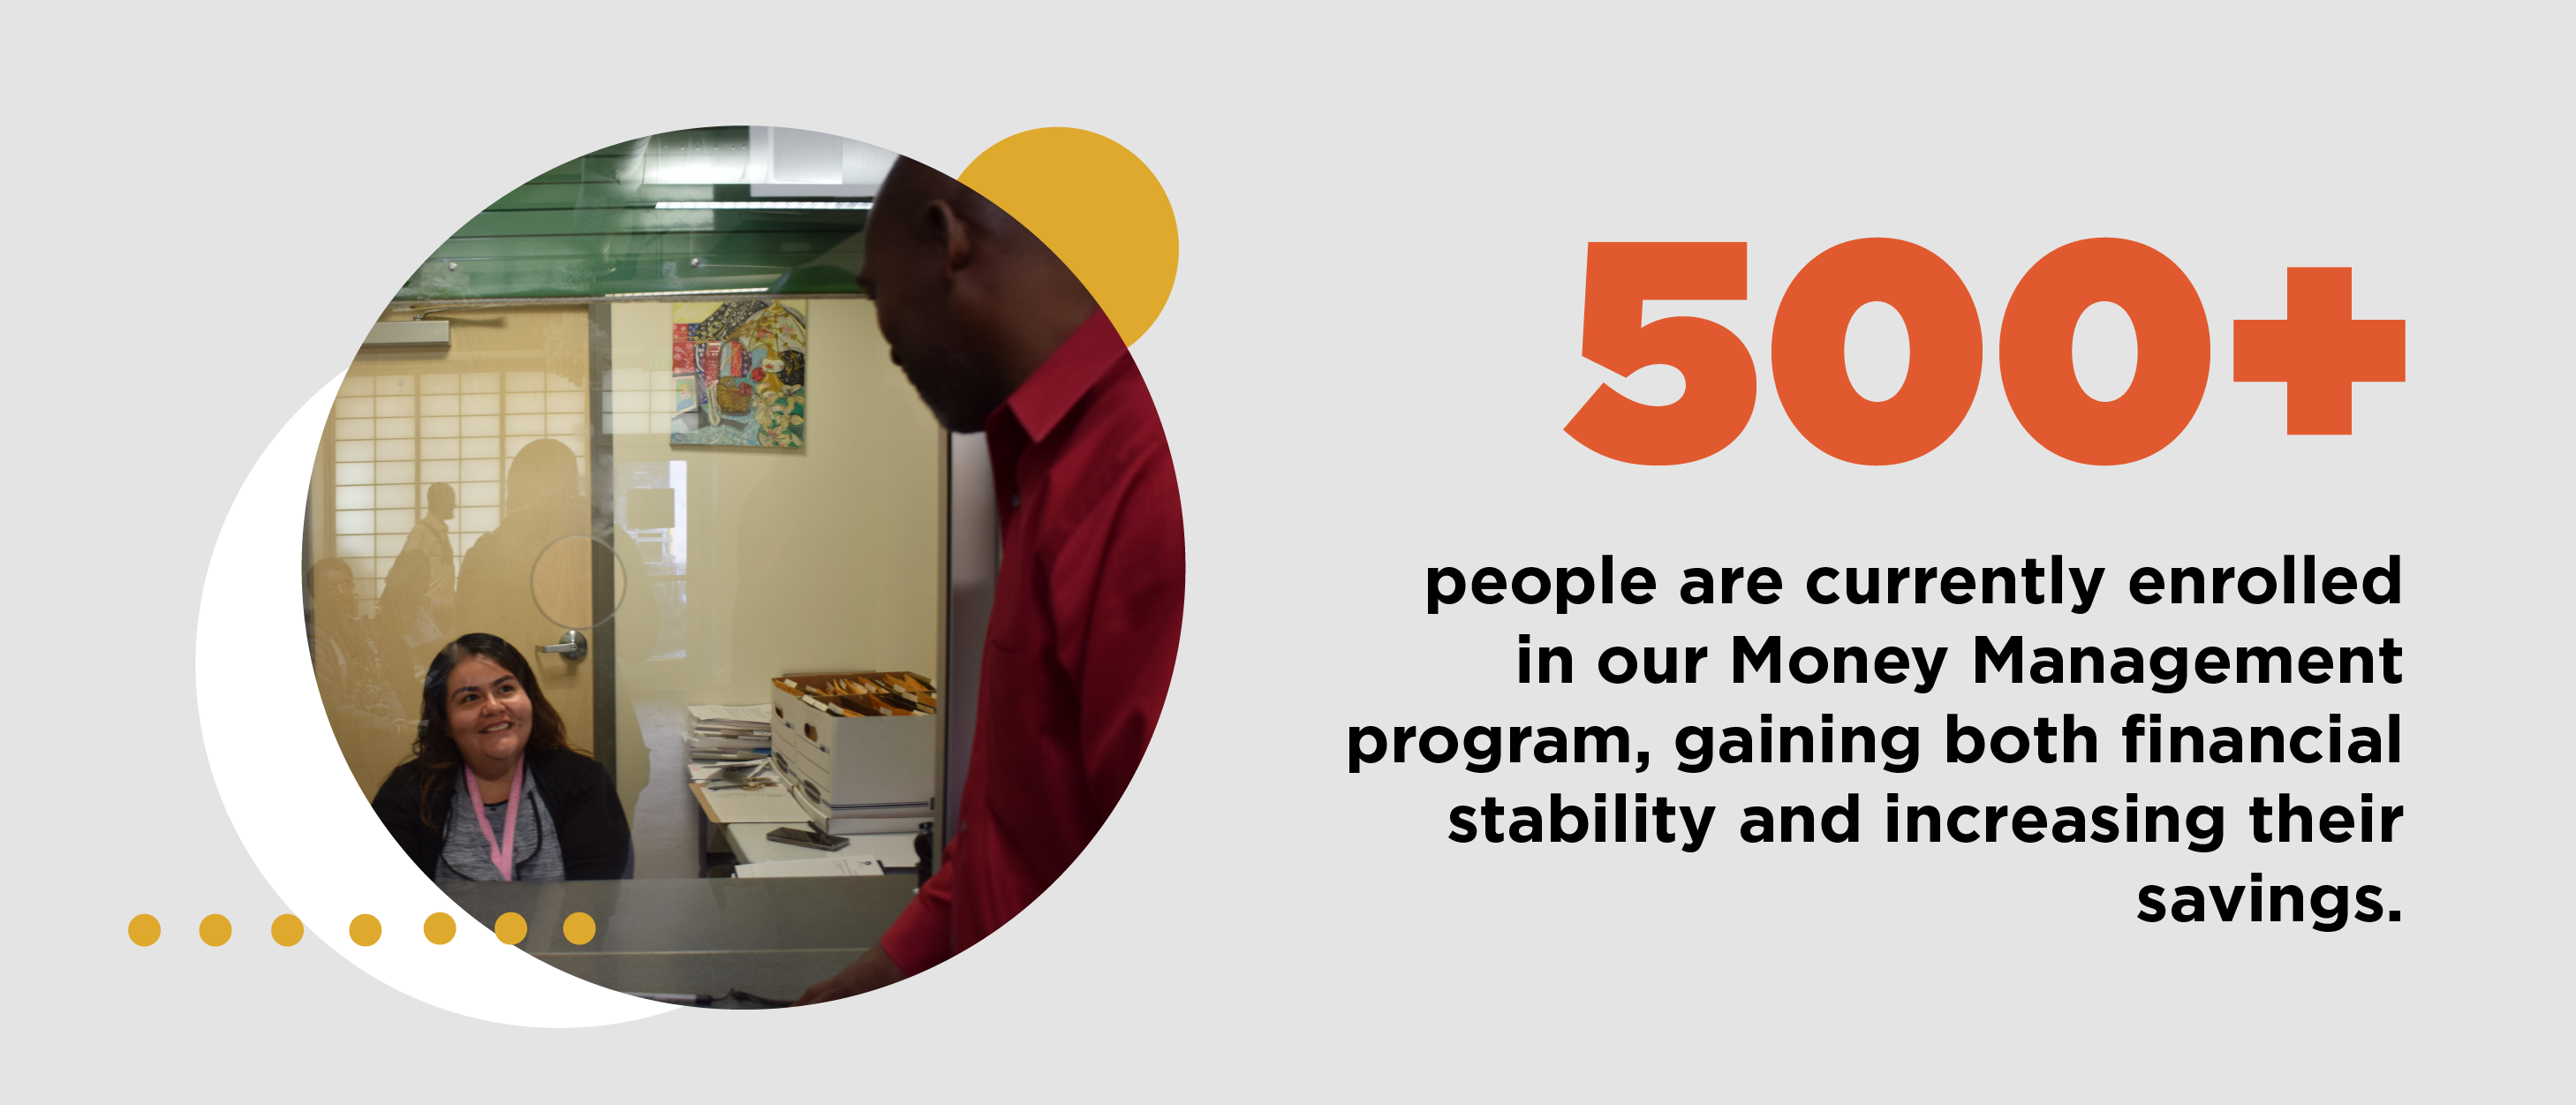 500+ people are currently enrolled in our Money Managemetn program, gaining both financial stability and increasing their savings